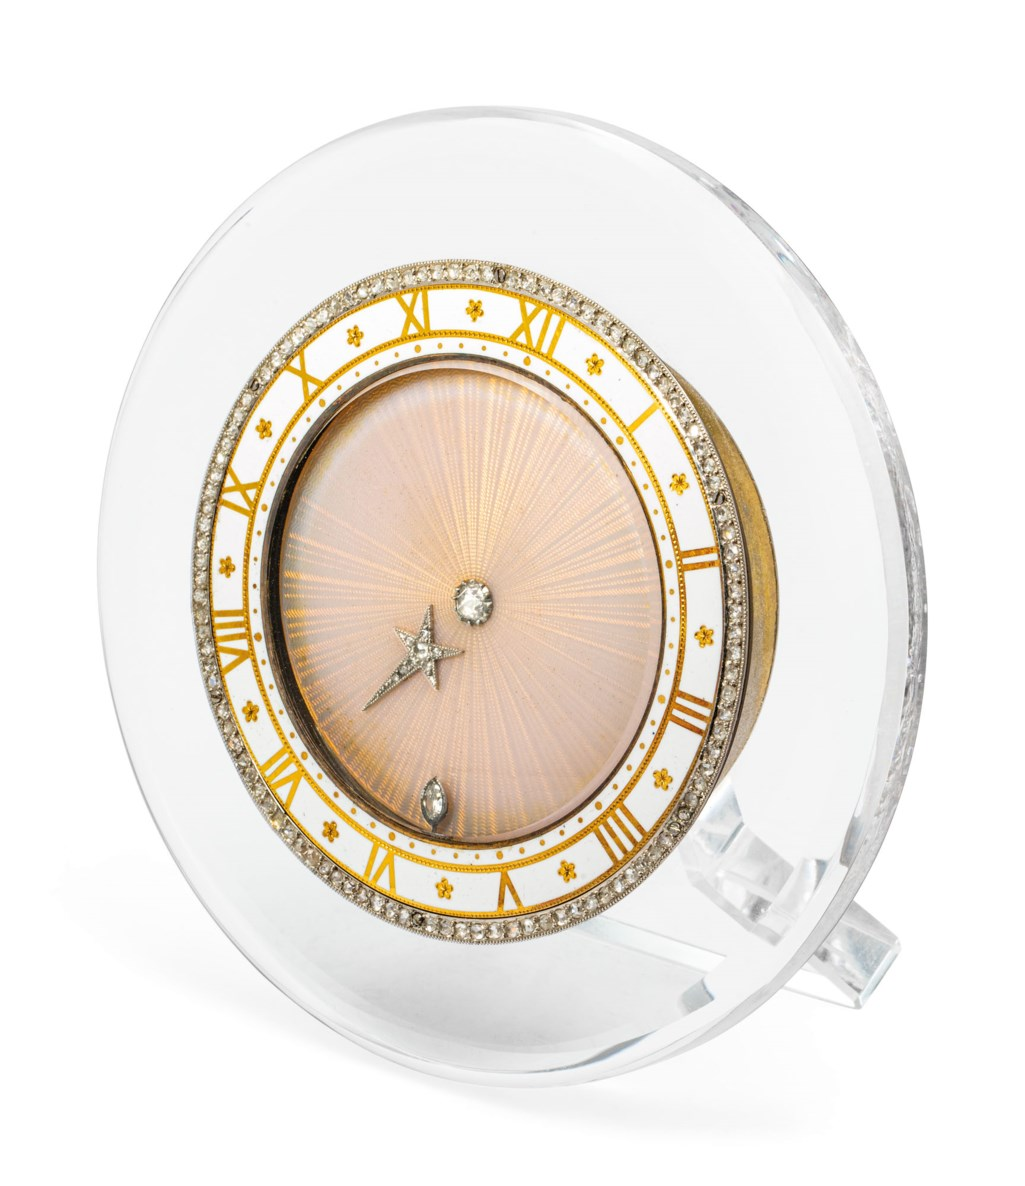 EARLY 20TH CENTURY 'COMET' SEMI-MYSTERY CLOCK, CARTIER